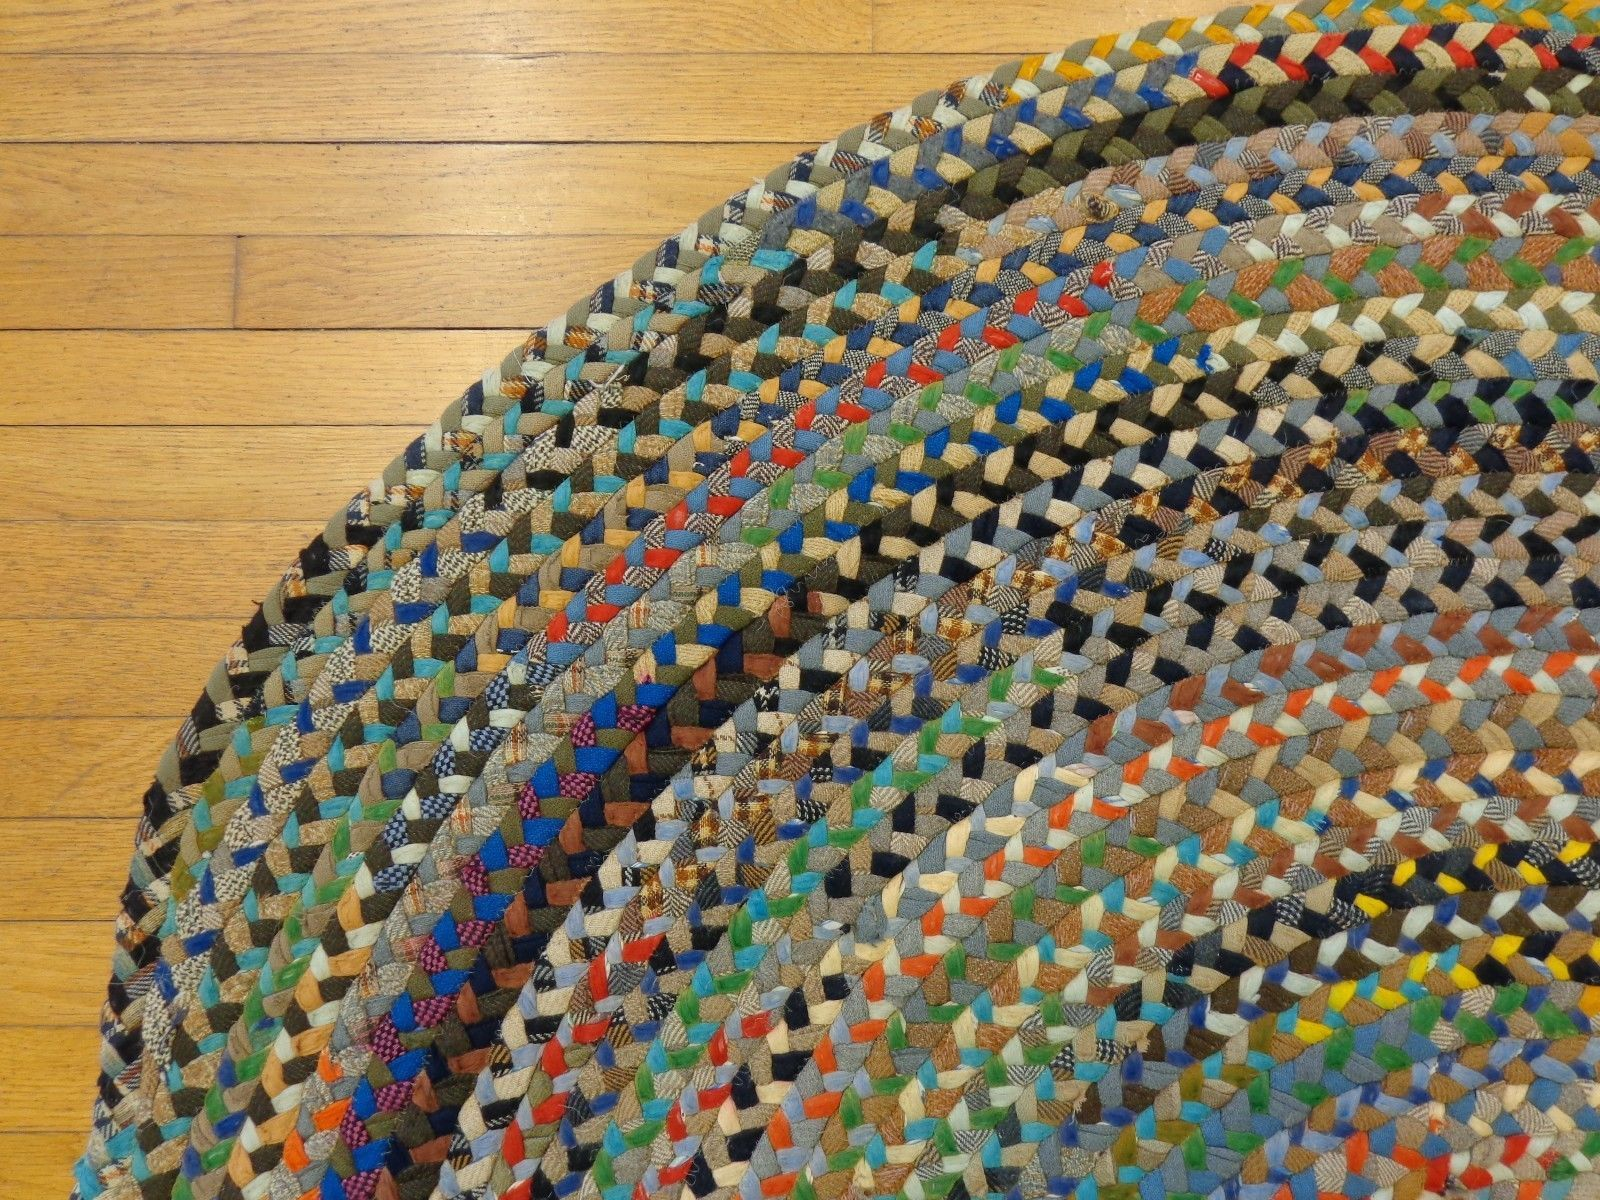 5 9 X 8 2 Braided Rug Discount Rug Sale Country Rug Vintage Area Rug Ebay With Images Country Rugs